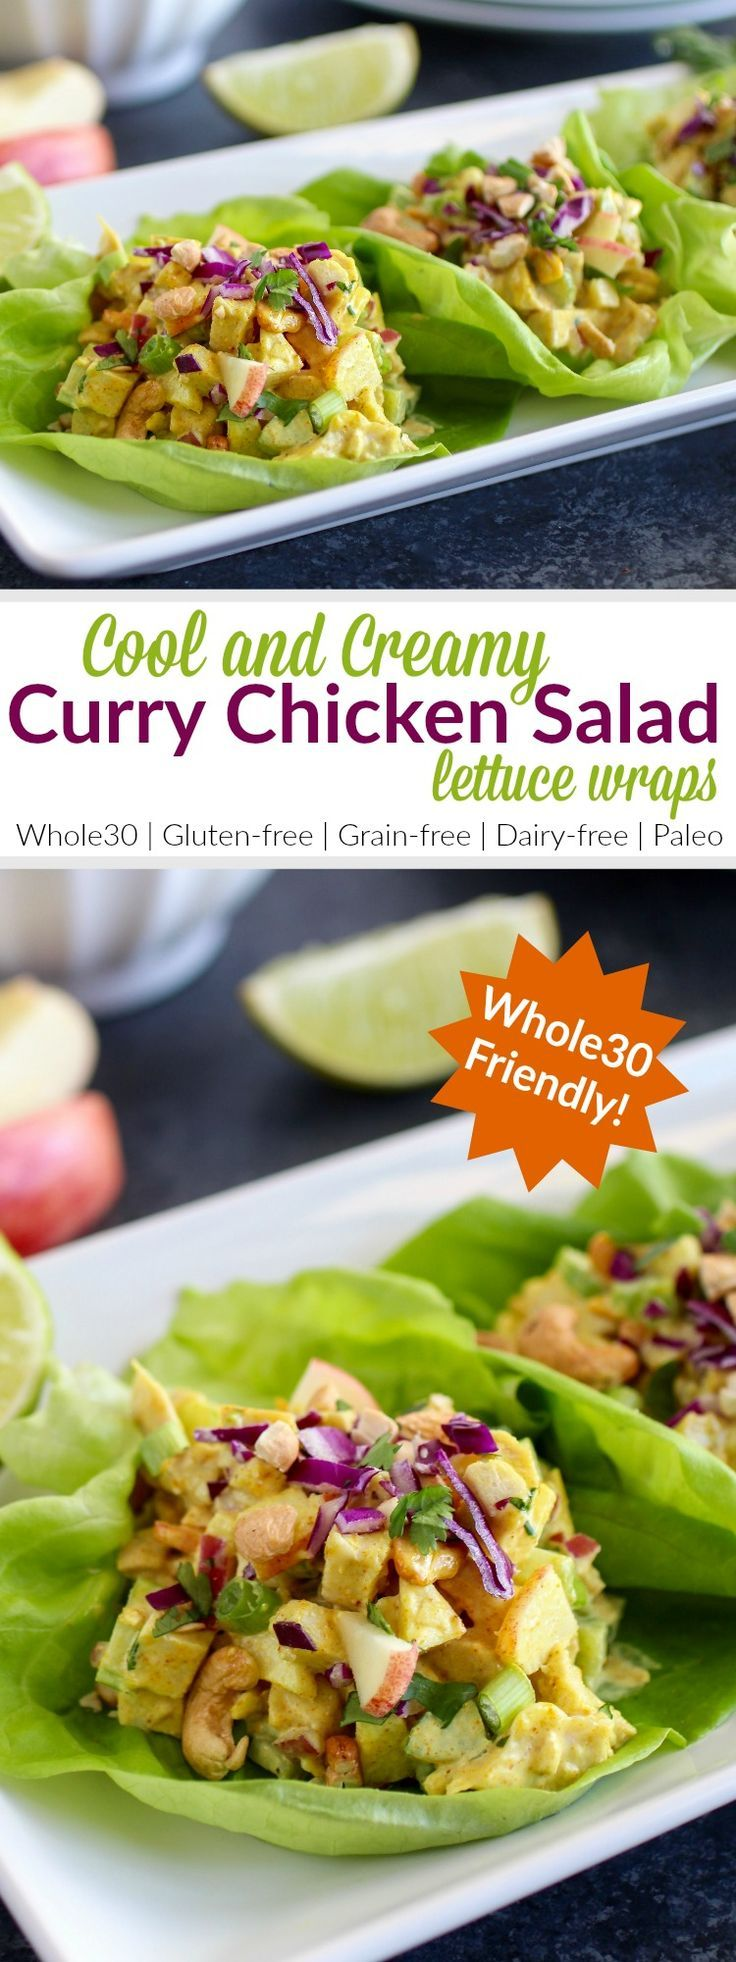 Cool and creamy chicken salad gets a little exotic with the addition of antioxidant-rich curry powder, crisp vegetables and crunchy cashews. | Whole30 | Paleo | Gluten-free | Grain-free | Dairy-free | http://therealfoodrds.com/curry-chicken-salad/